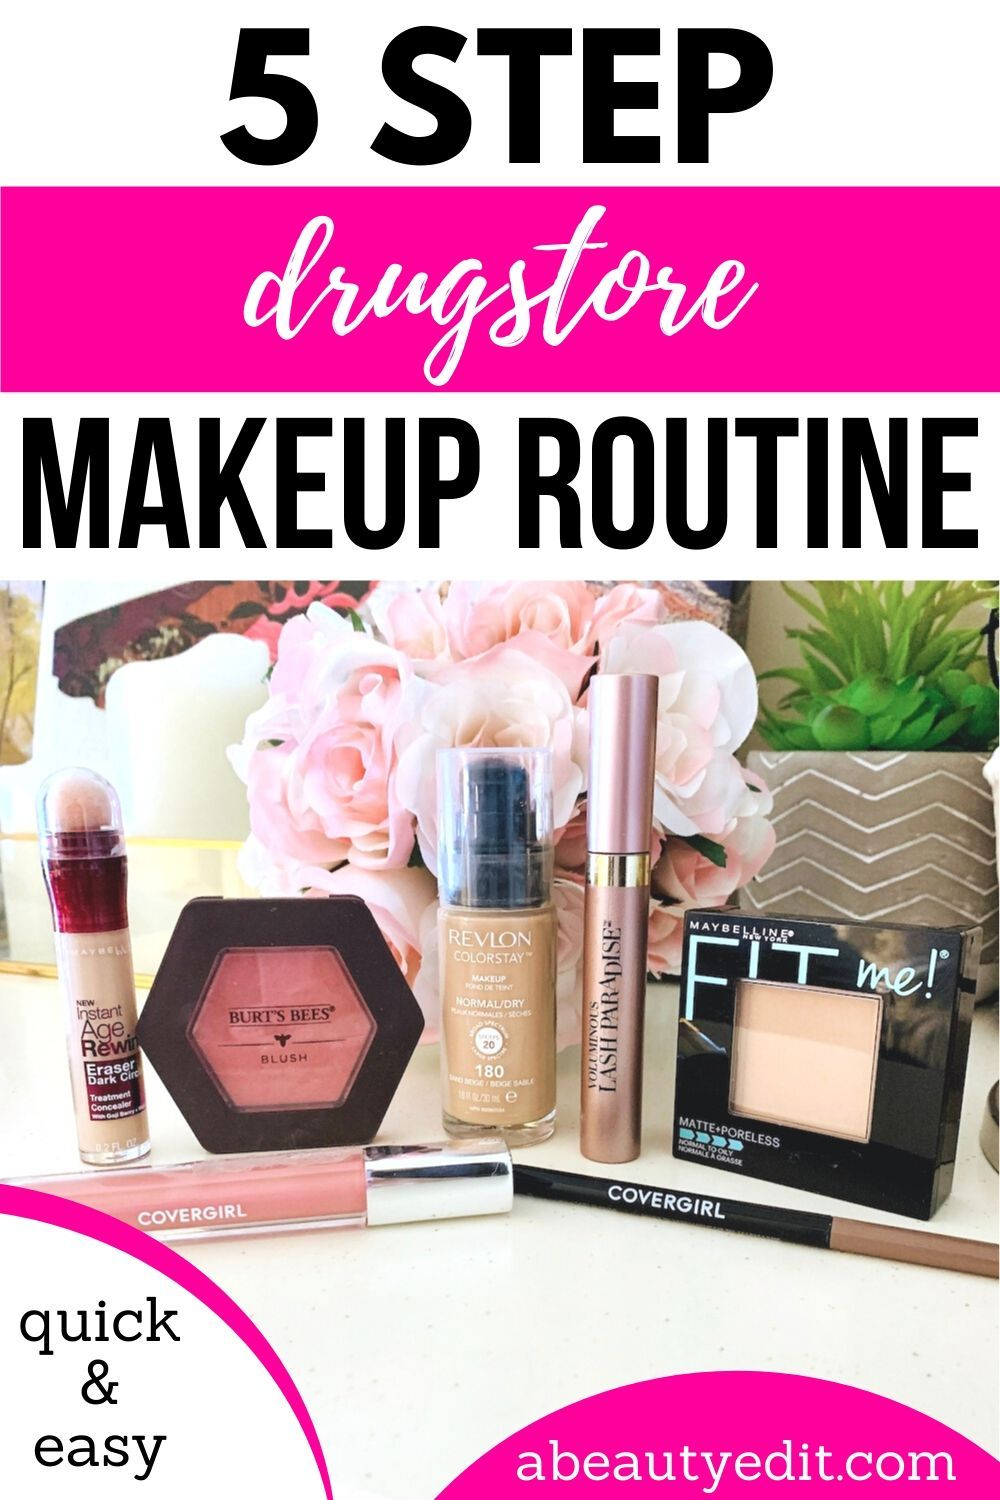 This quick and easy 5 step natural drugstore makeup routine is perfect for every day or when you are short on time. These easy steps will provide pretty color and an even tone to your skin, all while looking natural and not overdone. #drugstoremakeup #makeuproutine #easymakeup #makeuptutorial